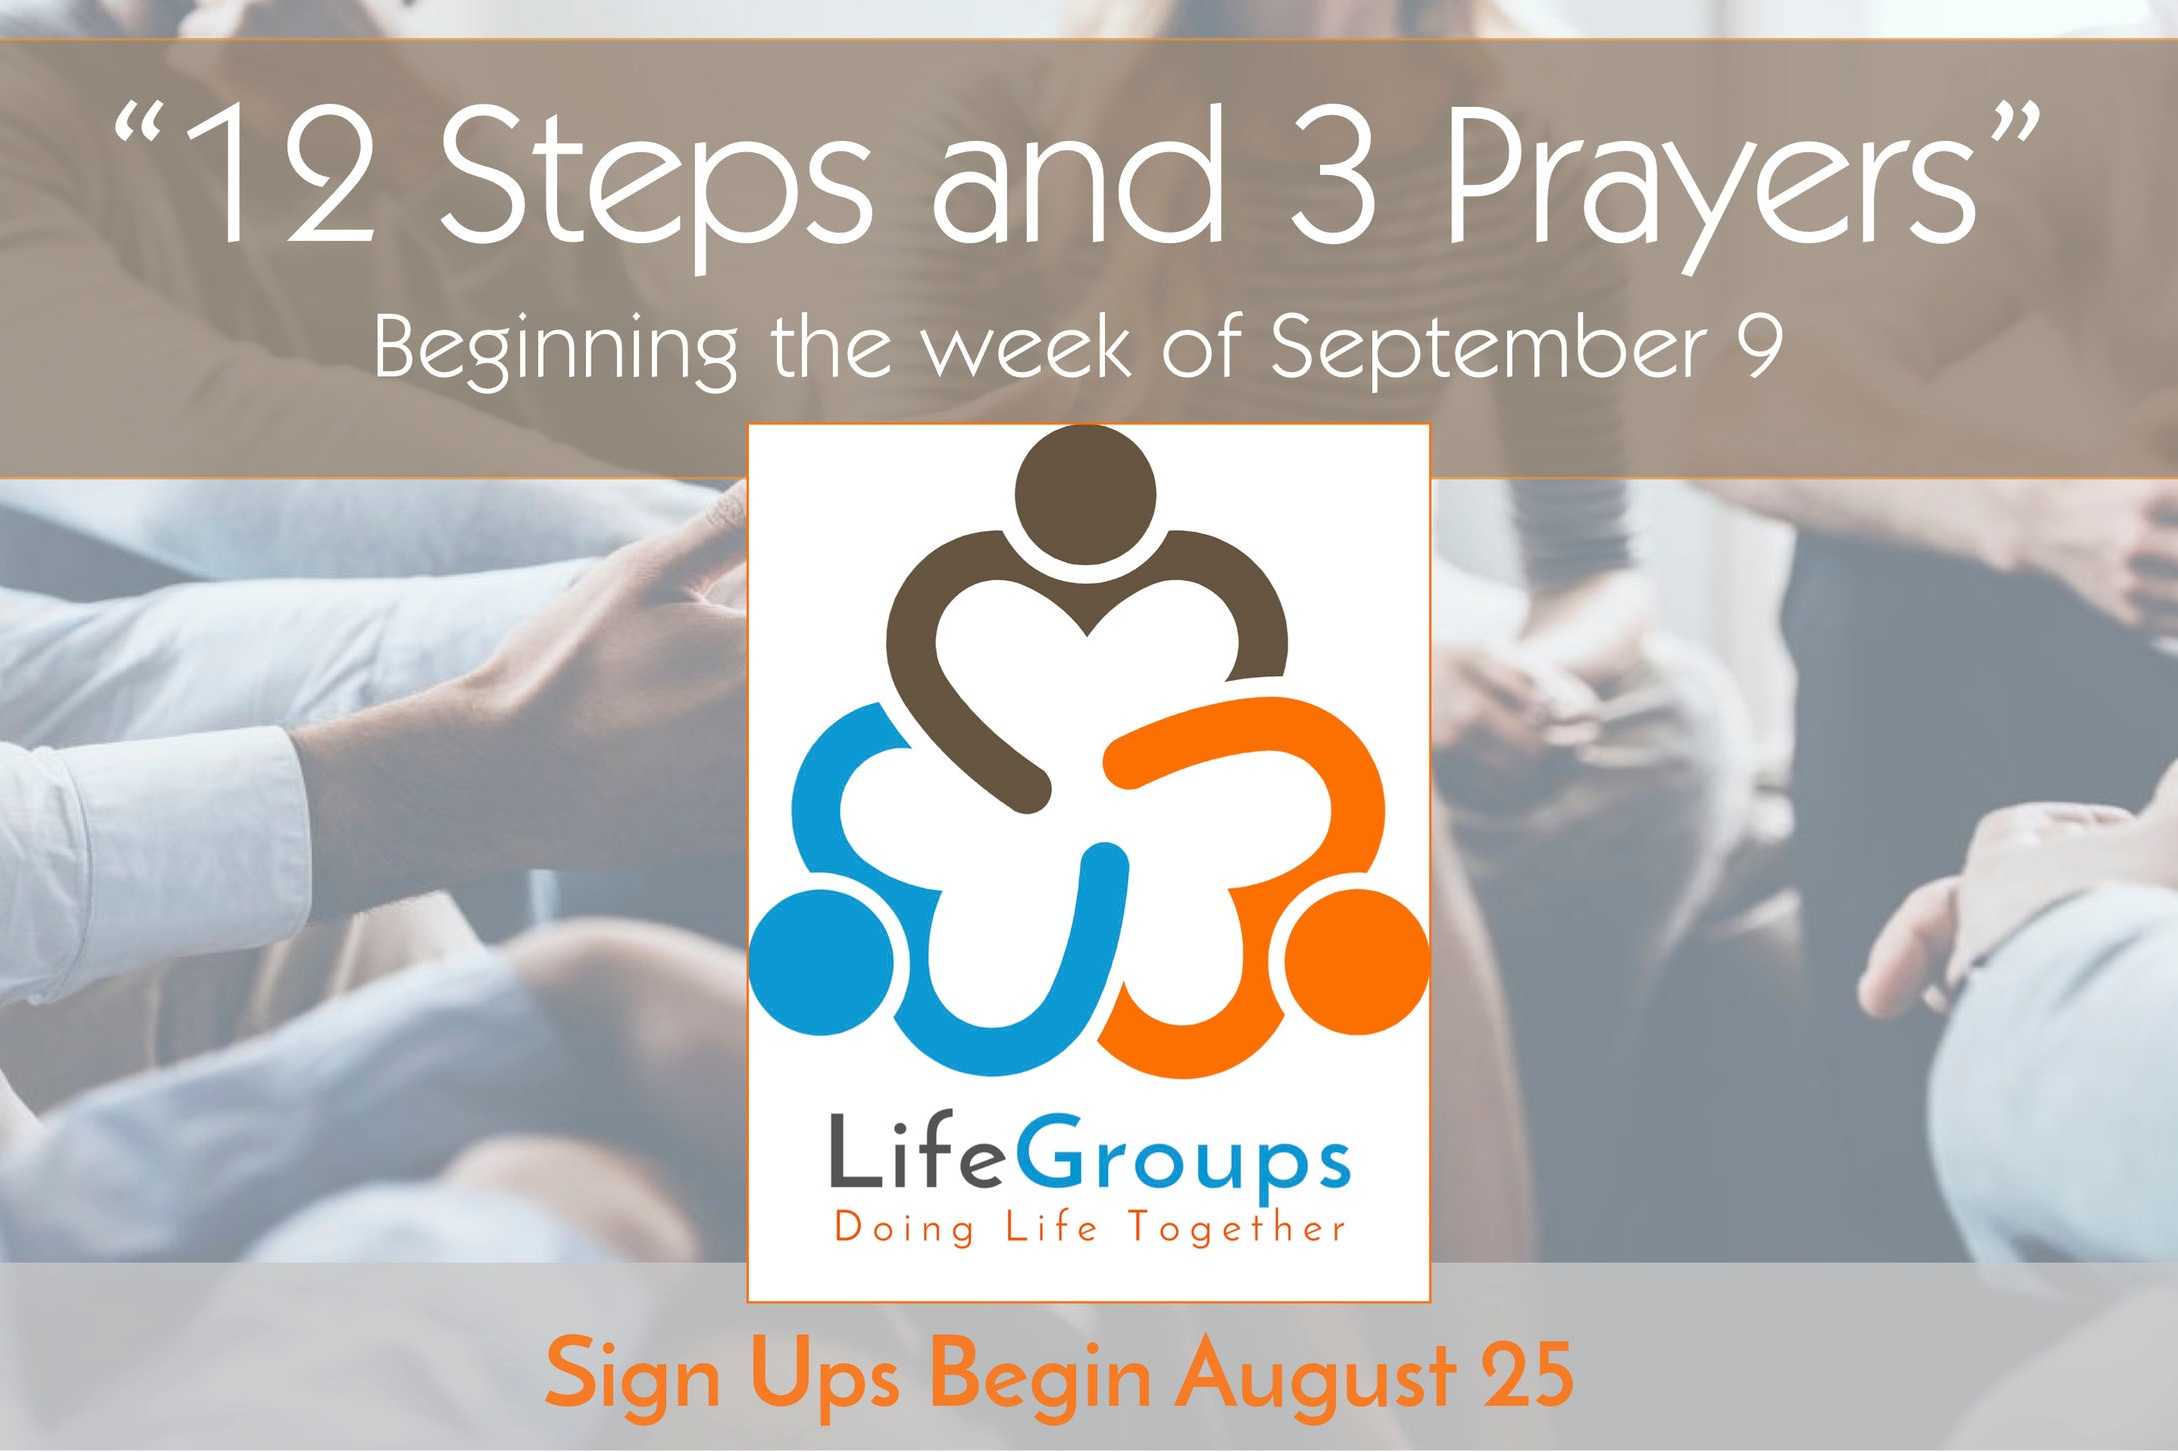 """September LifeGroups - Join us for our fall LifeGroups session, """"12 Steps and 3 Prayers"""" beginning the week of September 9. This session is based on two of Rev Wendy's powerful series, """"12 Steps to Reclaiming Your Life"""" and """"Help, Thanks, Wow."""" Meet with others in our community and go deep in discussion as you enrich your spiritual journey and form connections with each other. Signups begin on the patio and on our app August 25. For more information, please contact Kim Kennedy."""